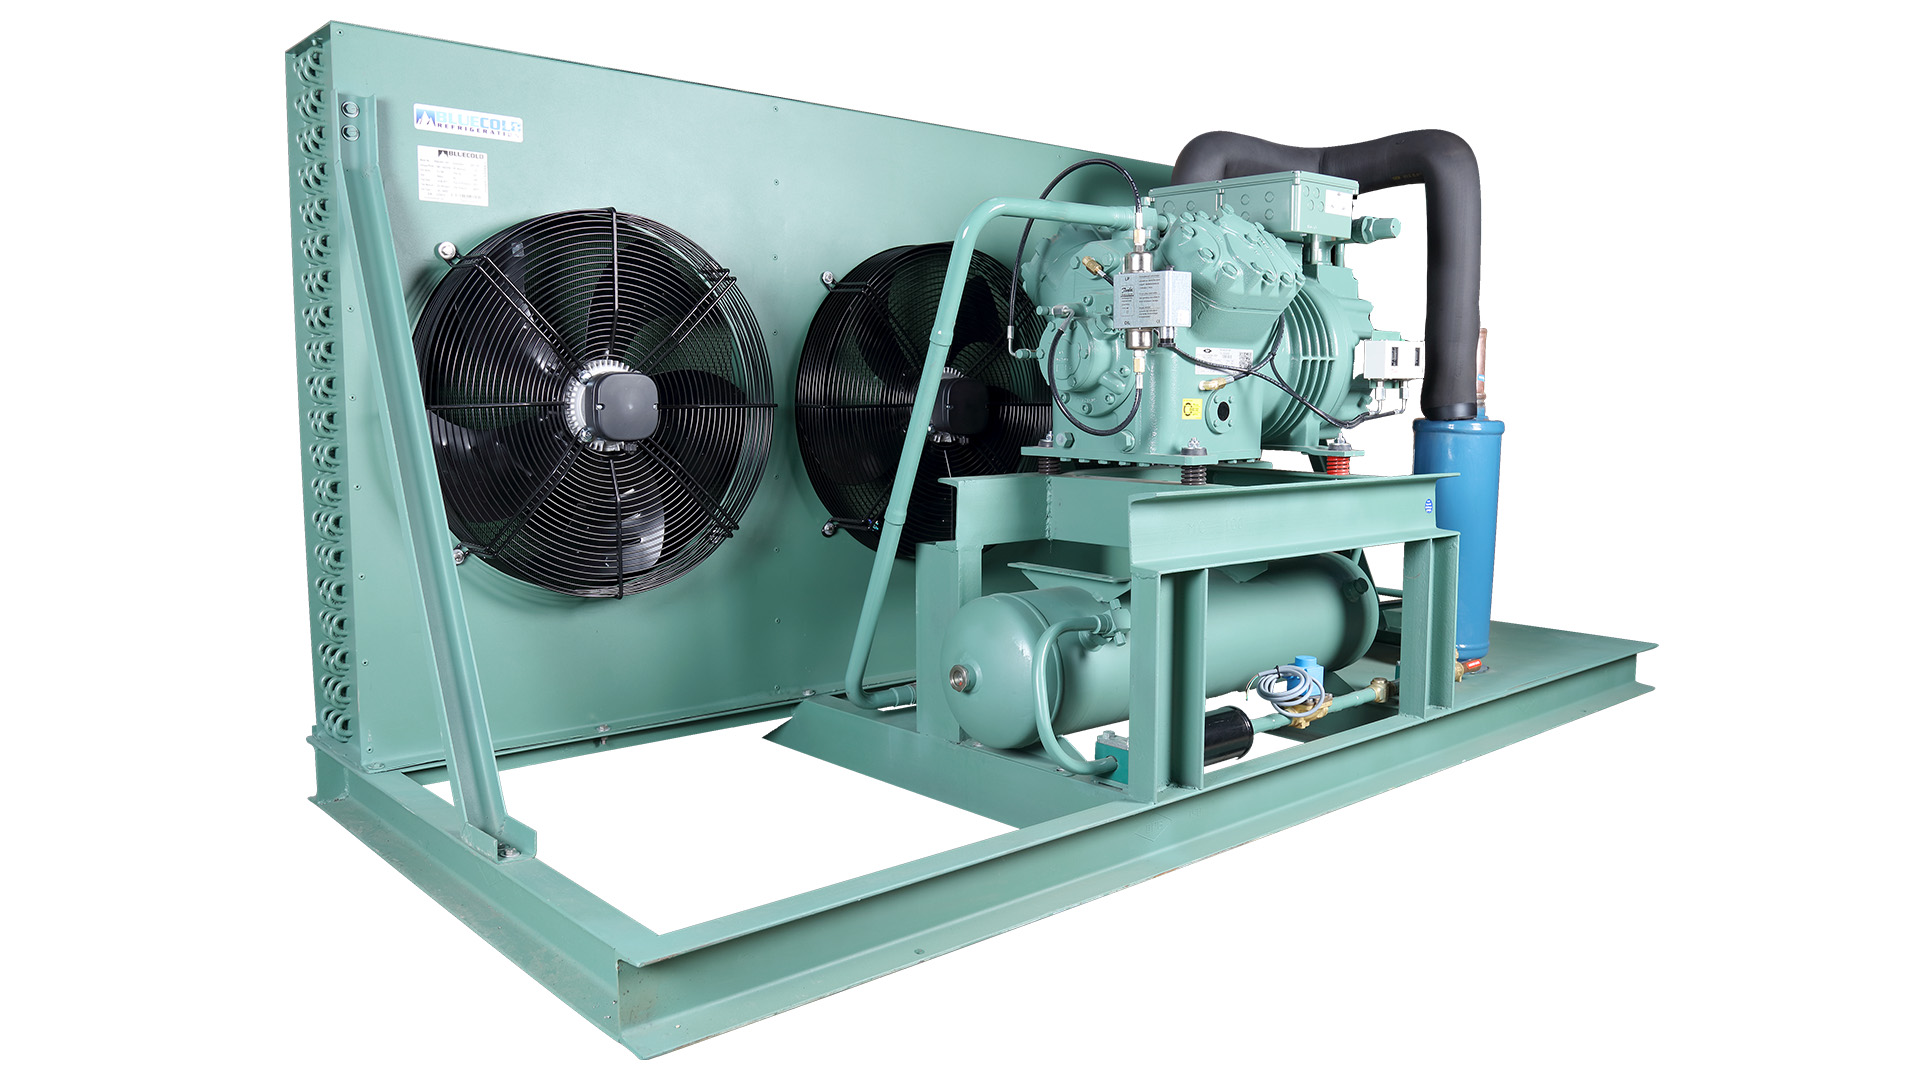 Condensing unit for cold room, blast freezer & freezer room